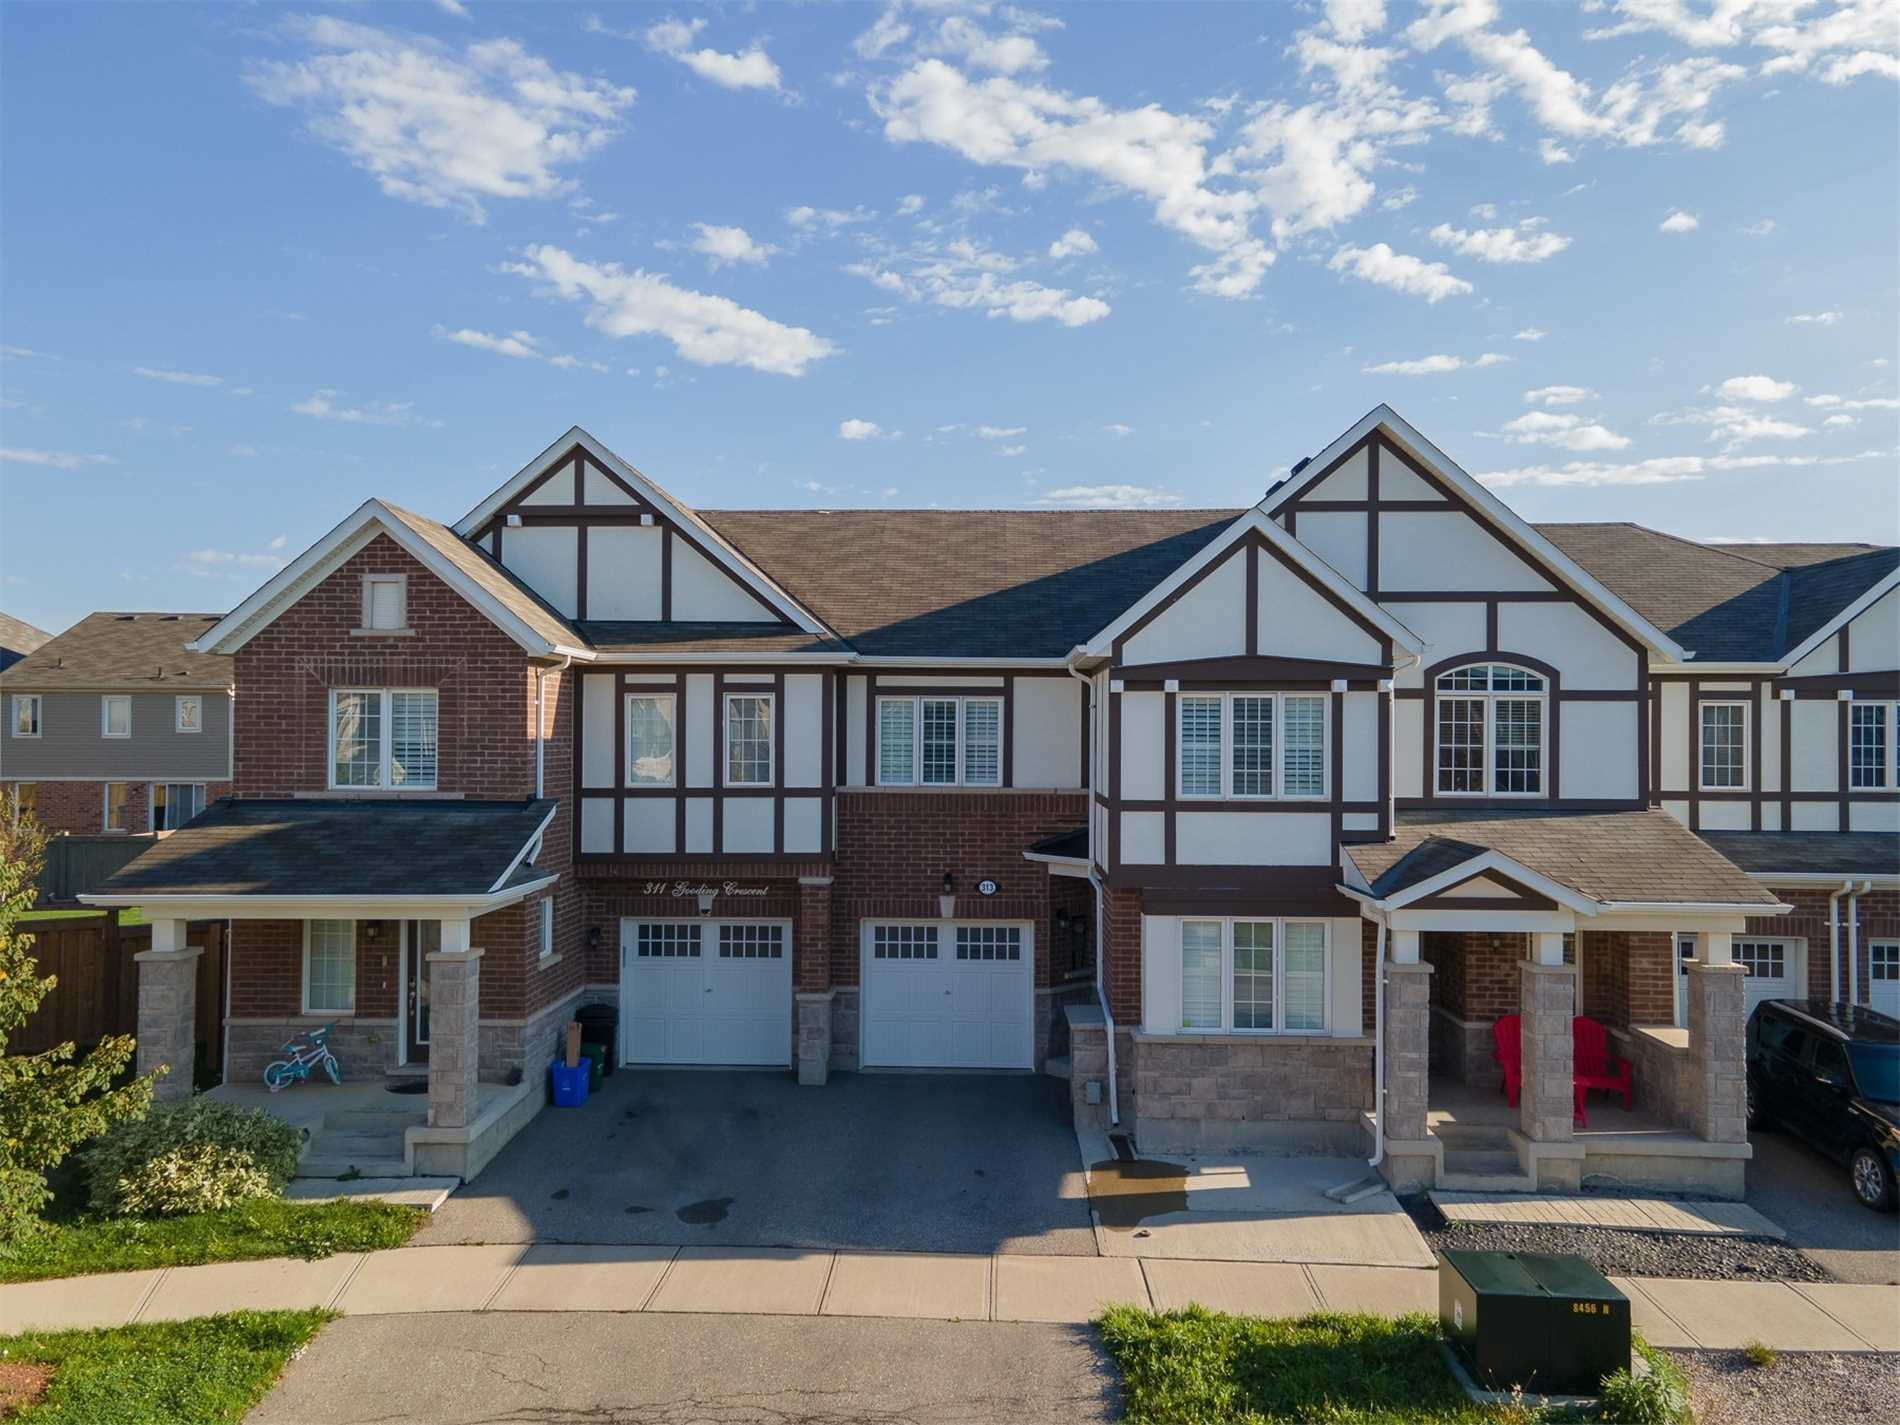 313 Gooding Cres - Ford Att/Row/Twnhouse for sale, 4 Bedrooms (W5401006) - #1